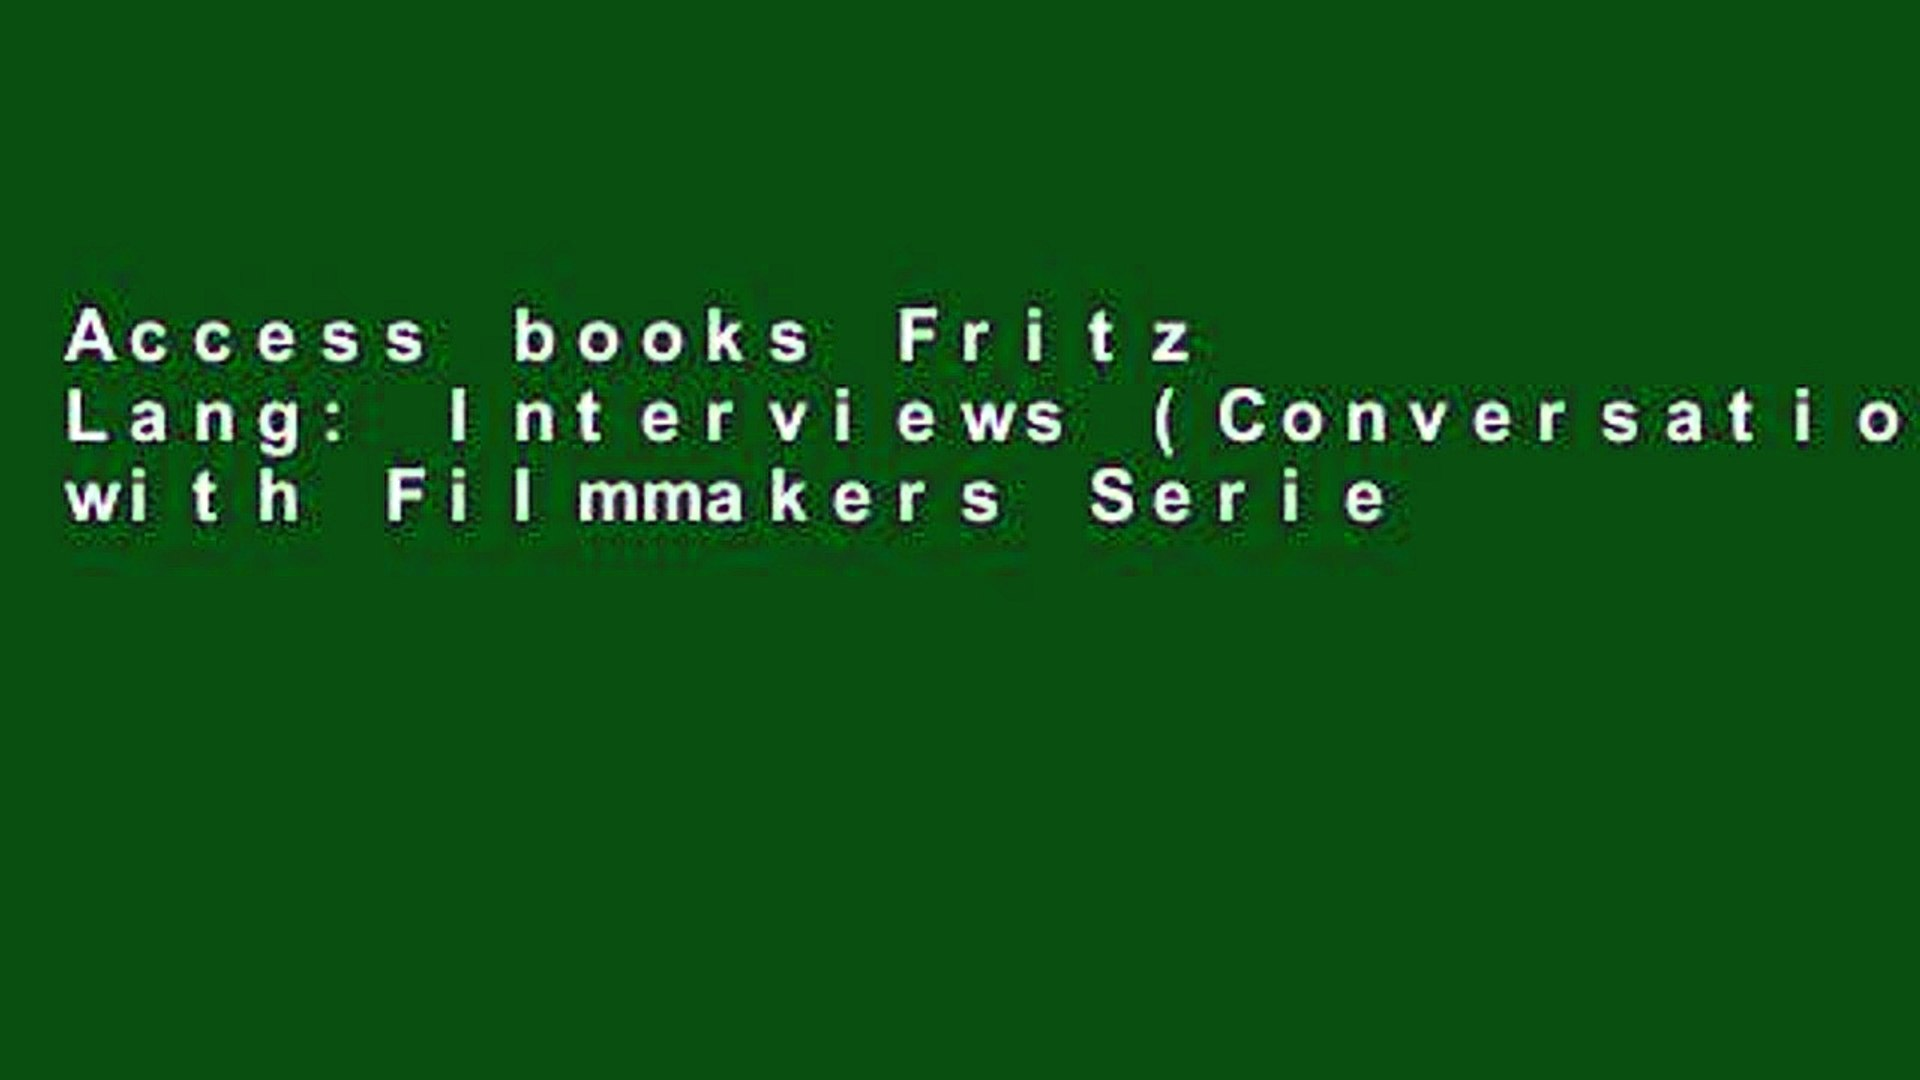 Access books Fritz Lang: Interviews (Conversations with Filmmakers Series) For Ipad